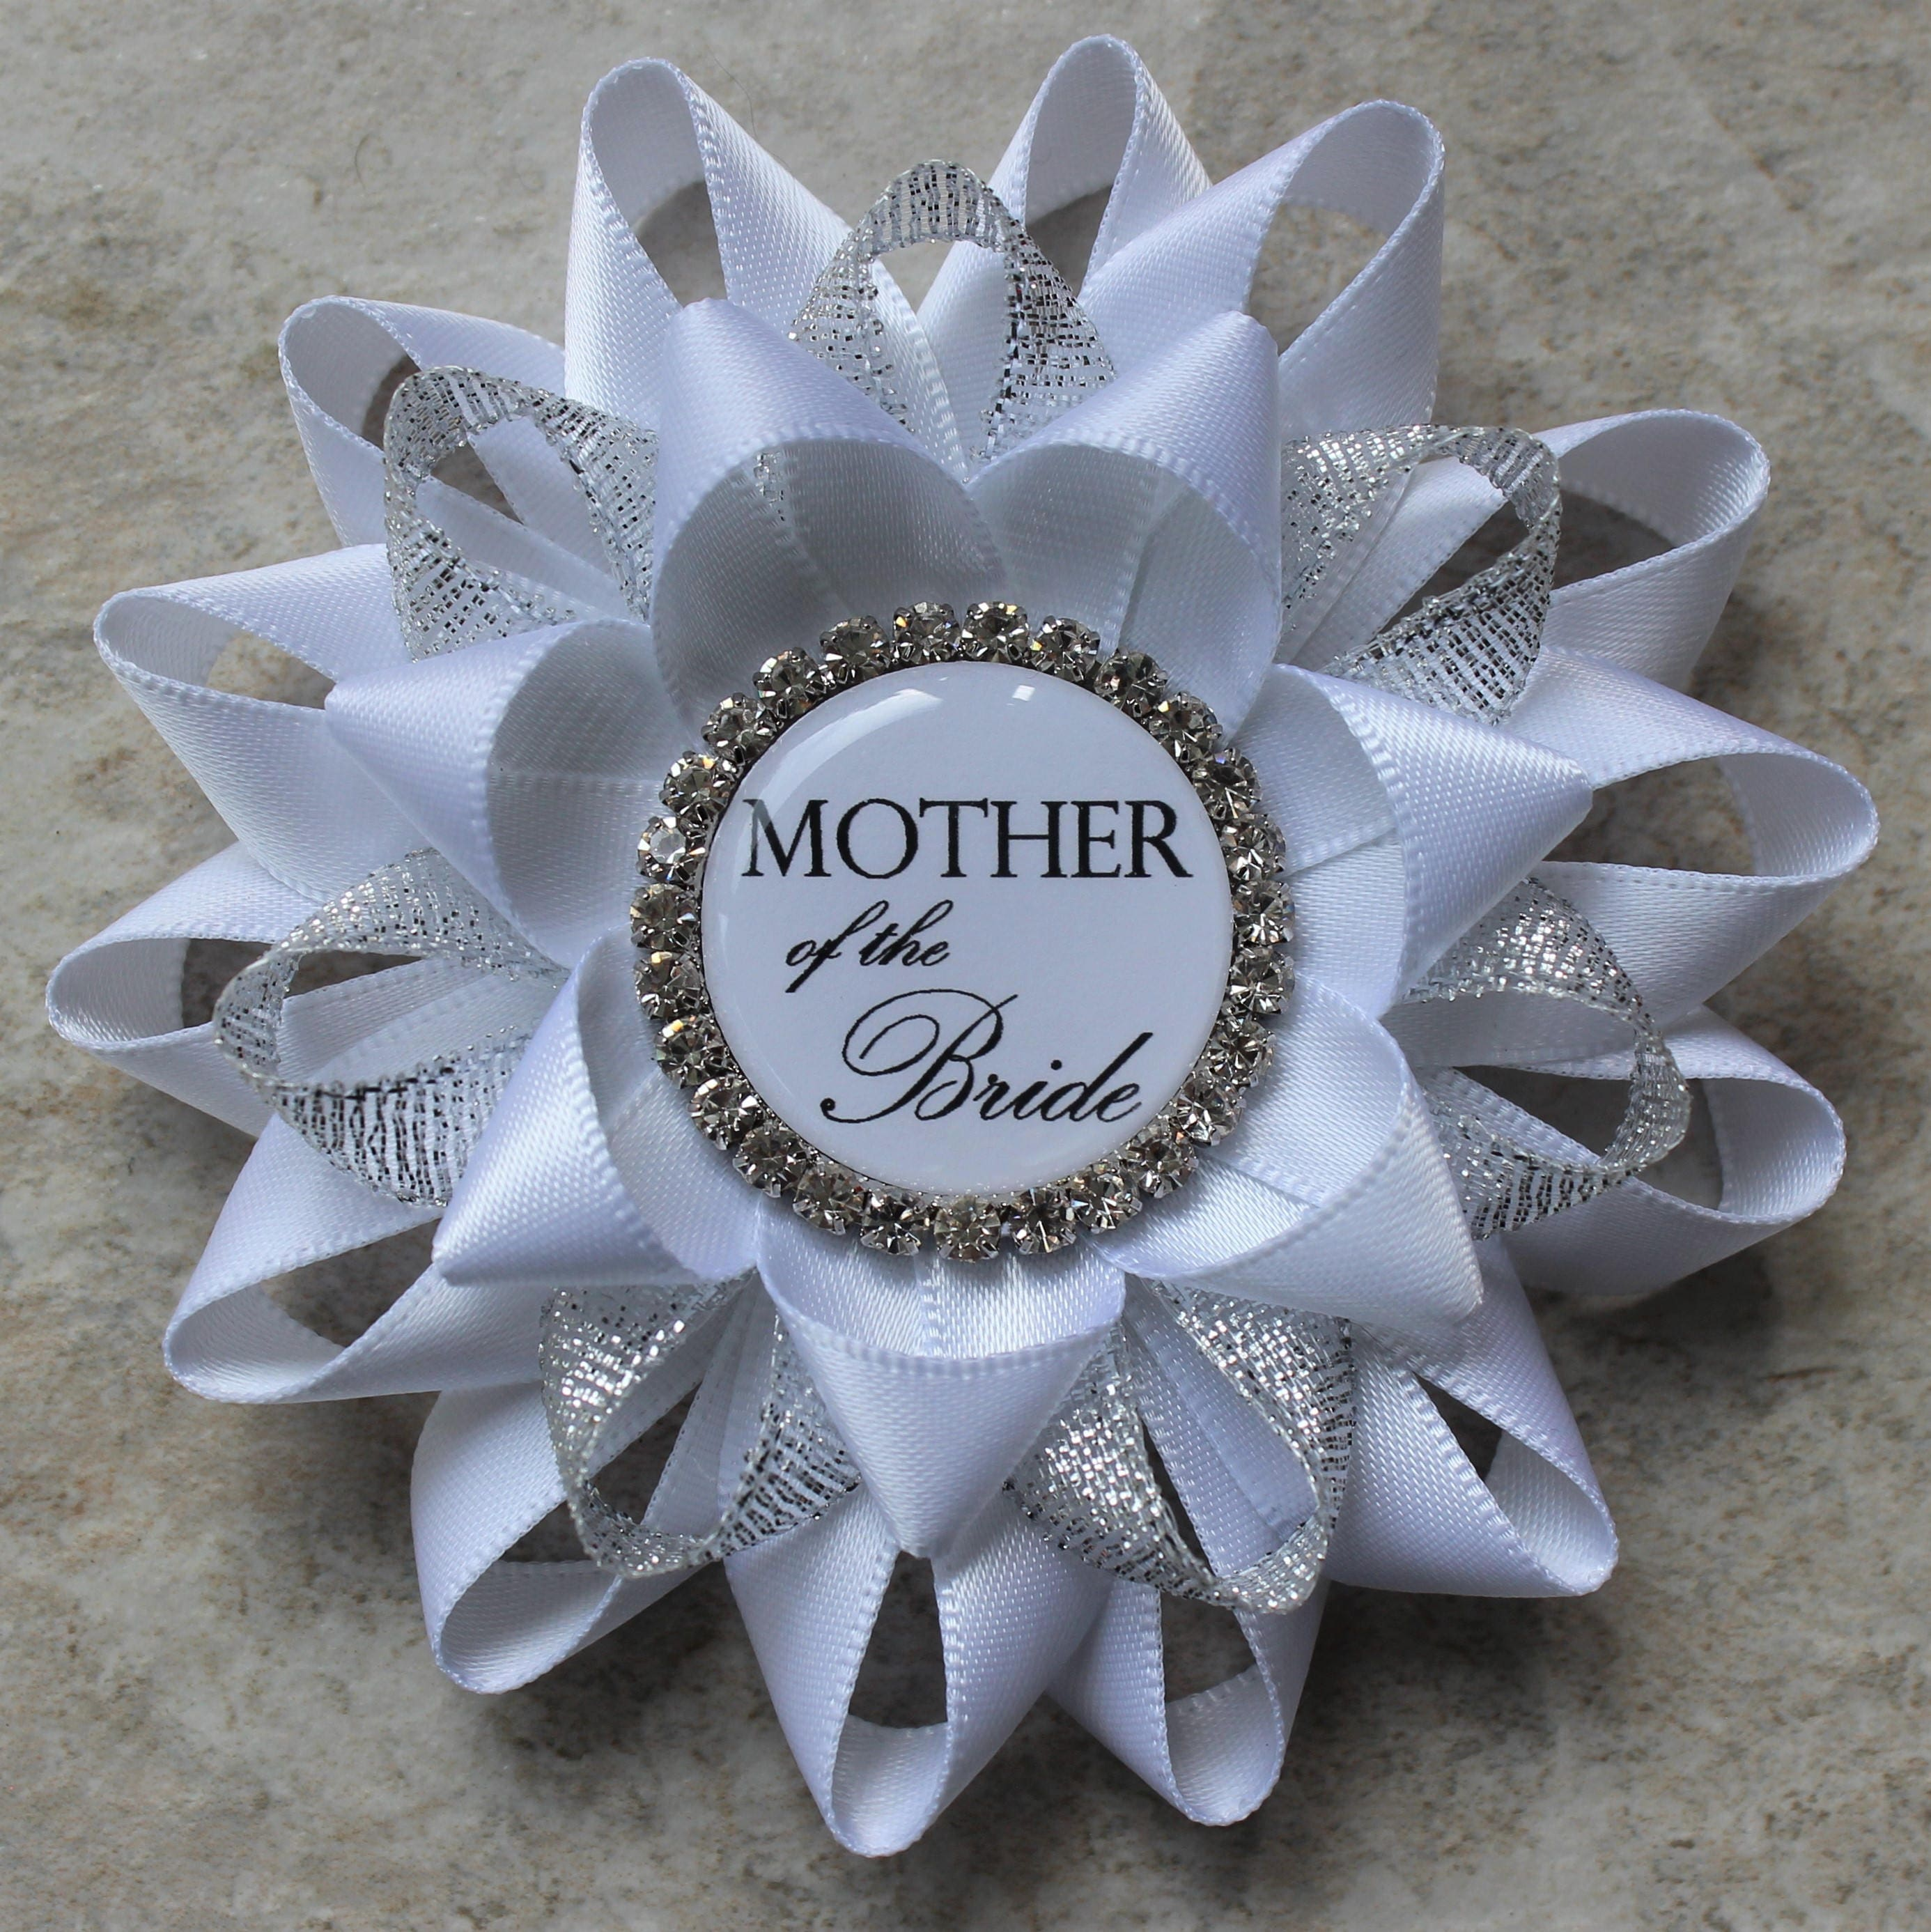 Bridal Gift From Mother: Mother Of The Bride Gift Mother Of The Groom Gift Bridal